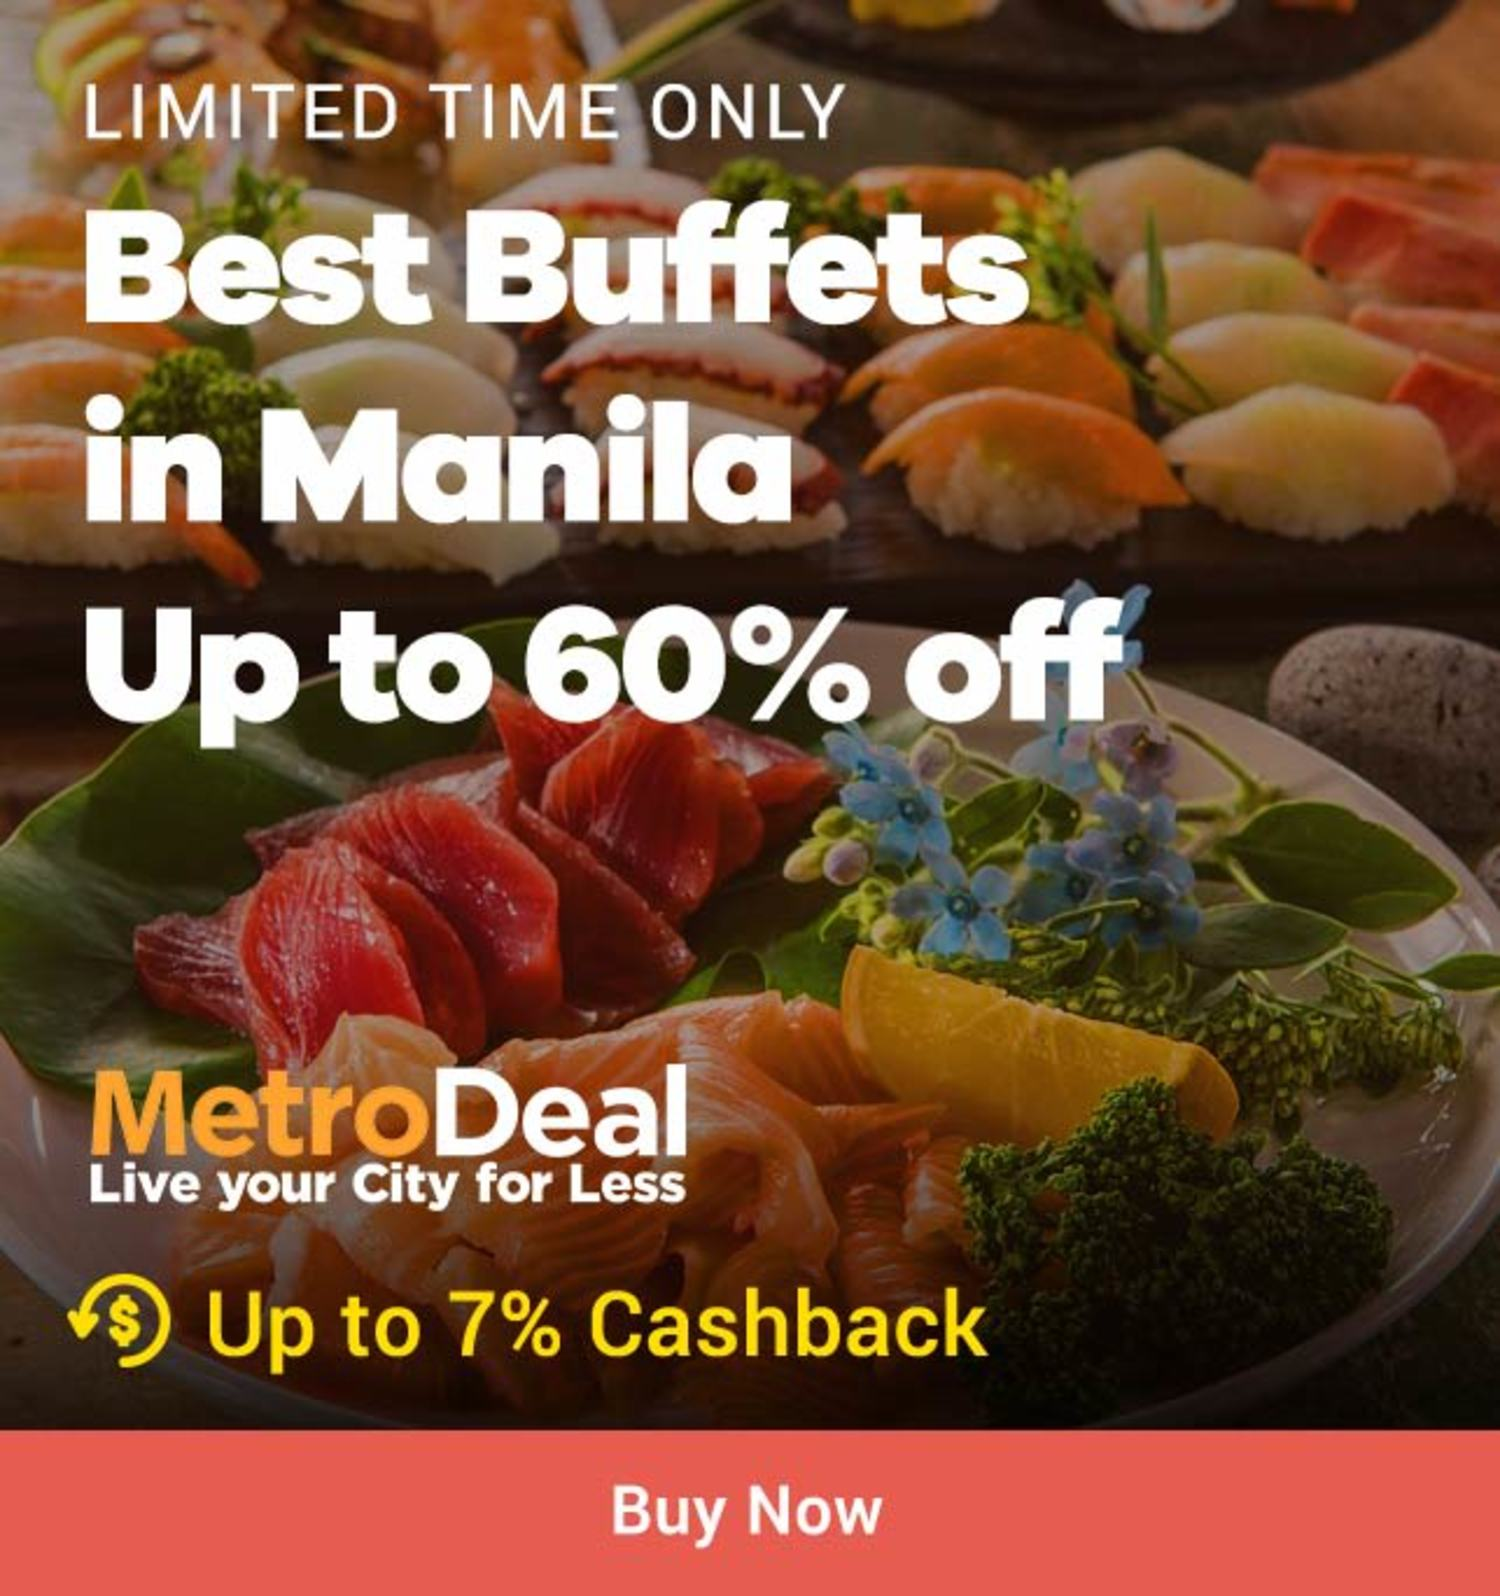 Metrodeal: Best Buffets in Manila Up to 60% off